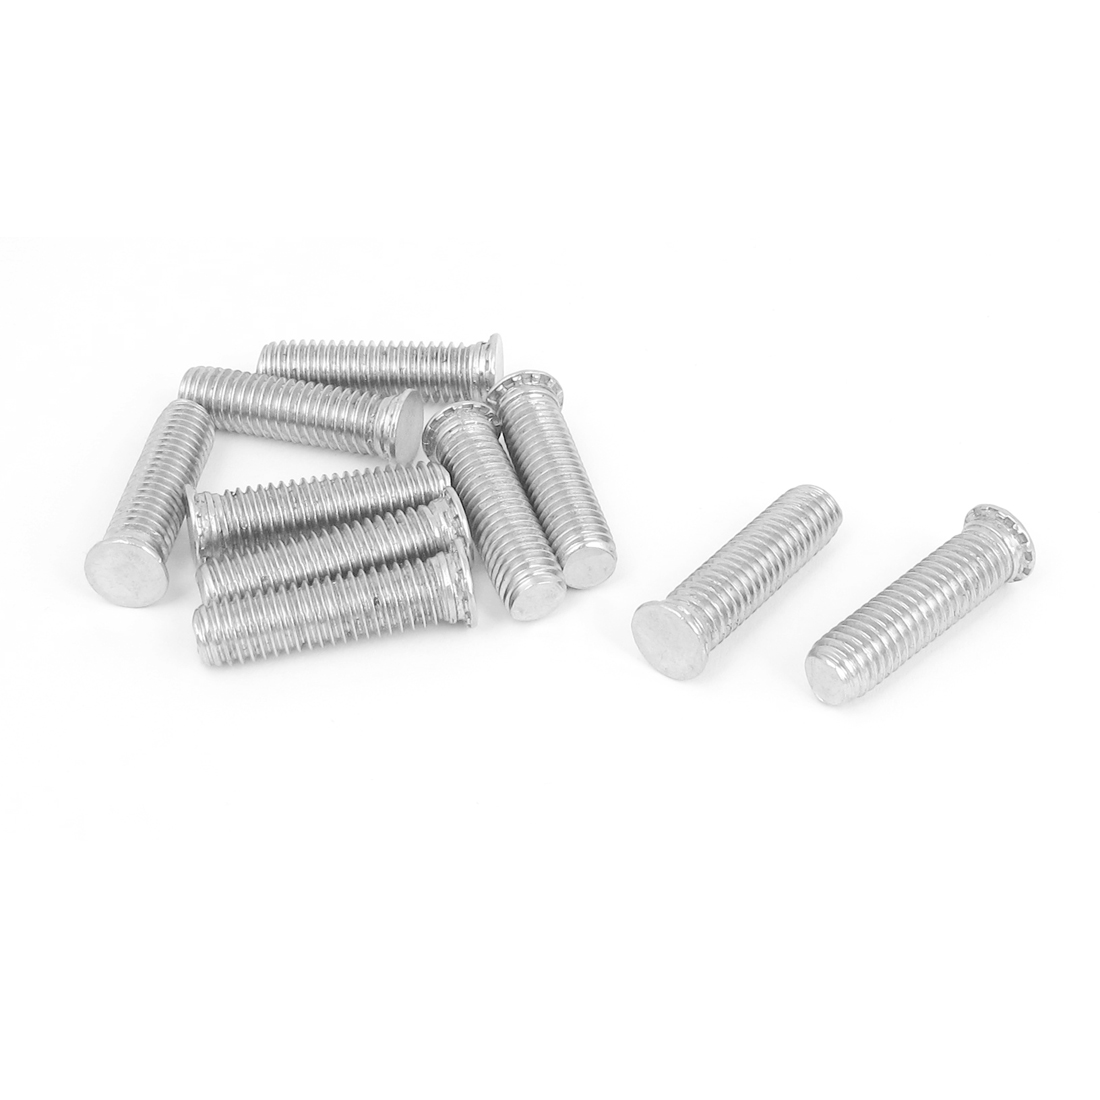 M8x30mm Flush Head Stainless Steel Self Clinching Threaded Studs Fastener 10pcs